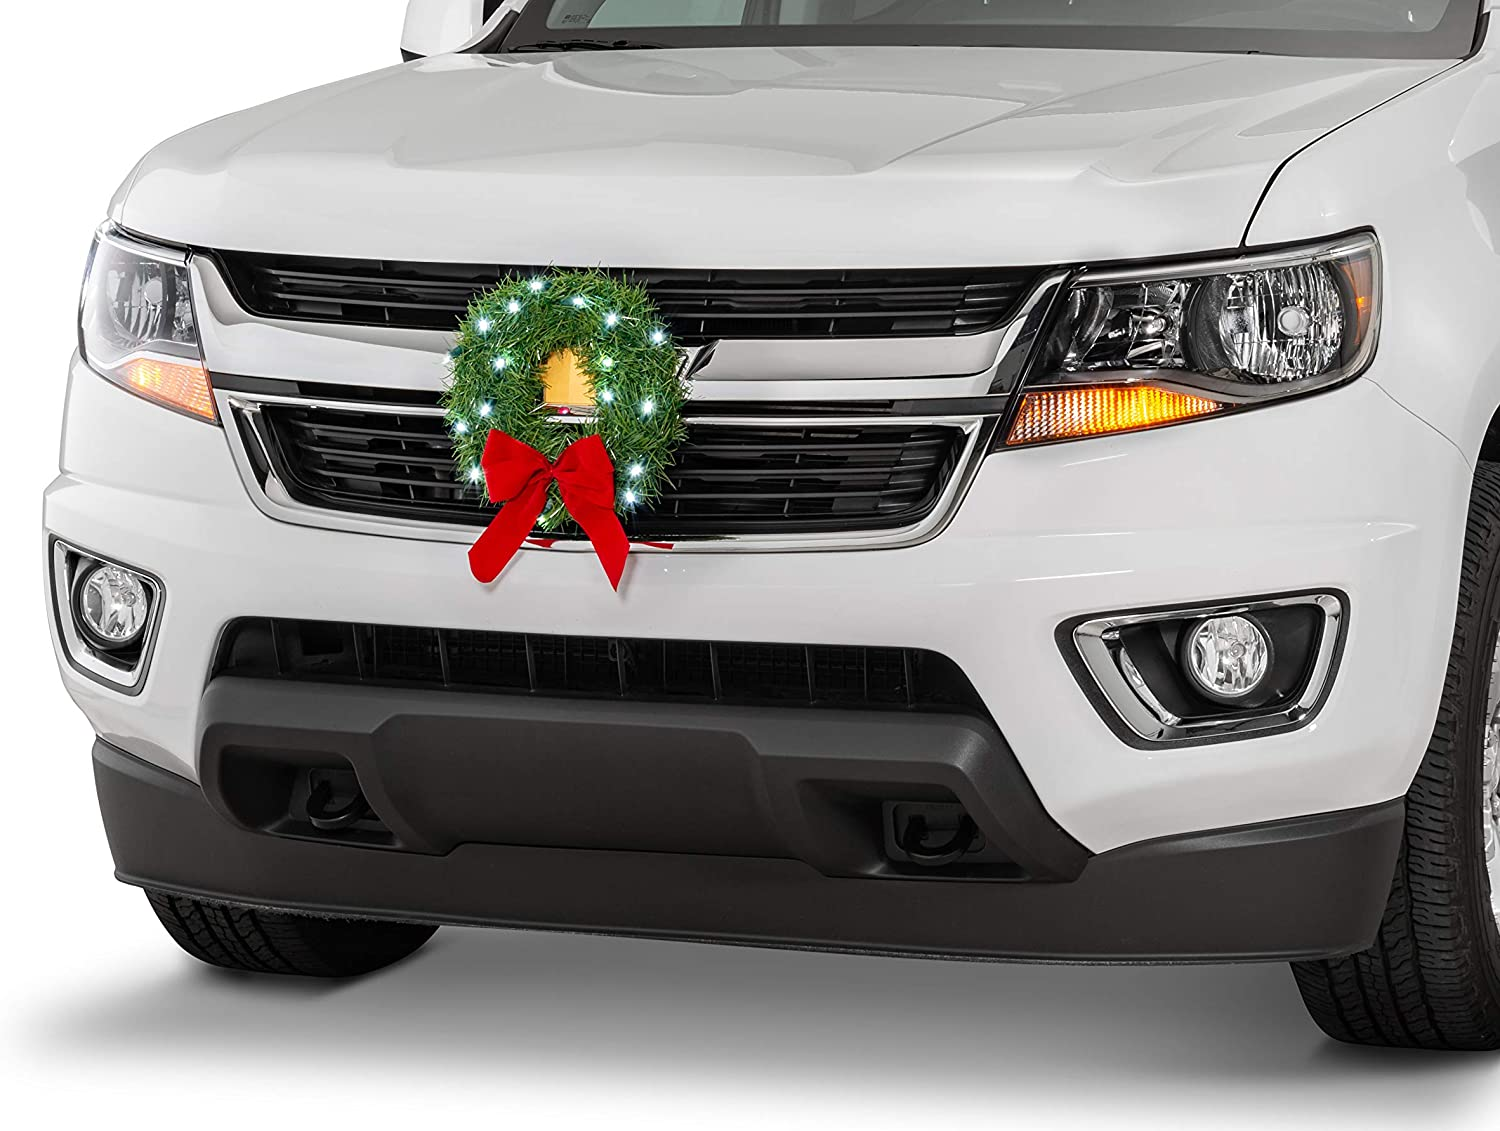 TACTIK Christmas Wreath for Car, Truck, or SUV | 12-Volt LED Lighted | Weather Proof | Fits any Automotive Cigarette Lighter Outlet | Mounting Equipment Included | Mounts to Car or Truck Grille